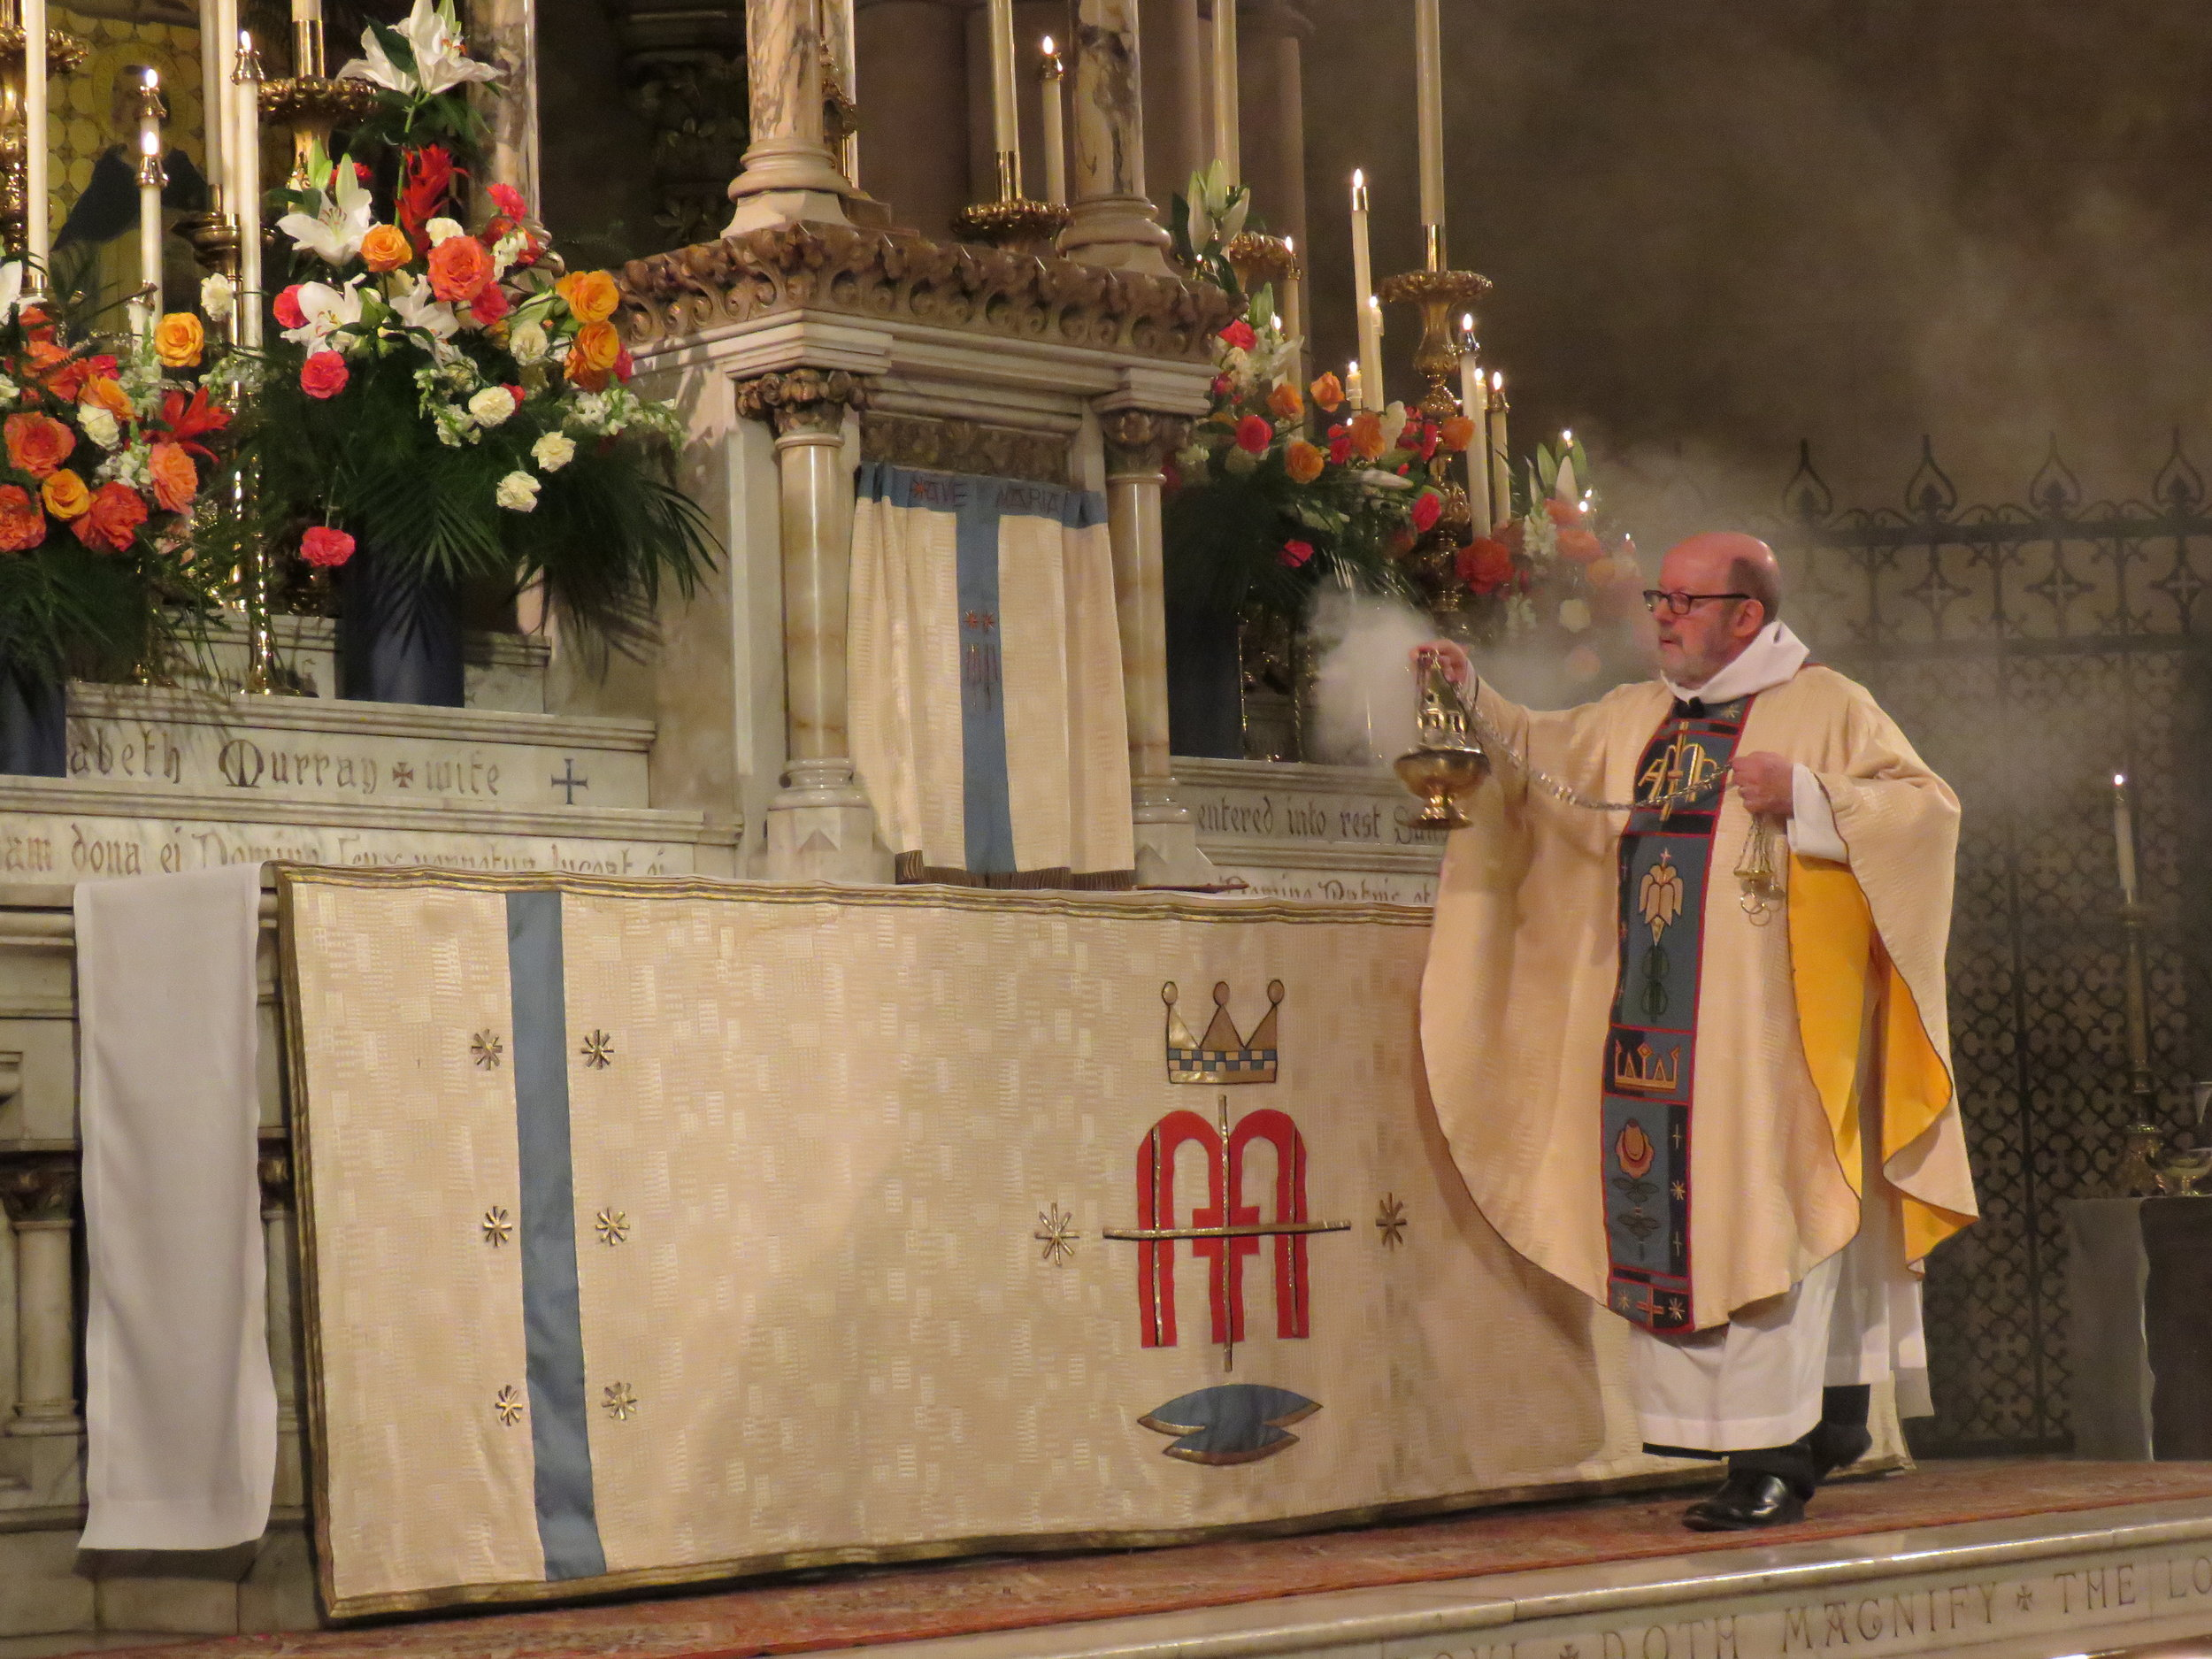 Incense is offered during the singing of Gloria in excelsis.  Photo by Damien Joseph SSF